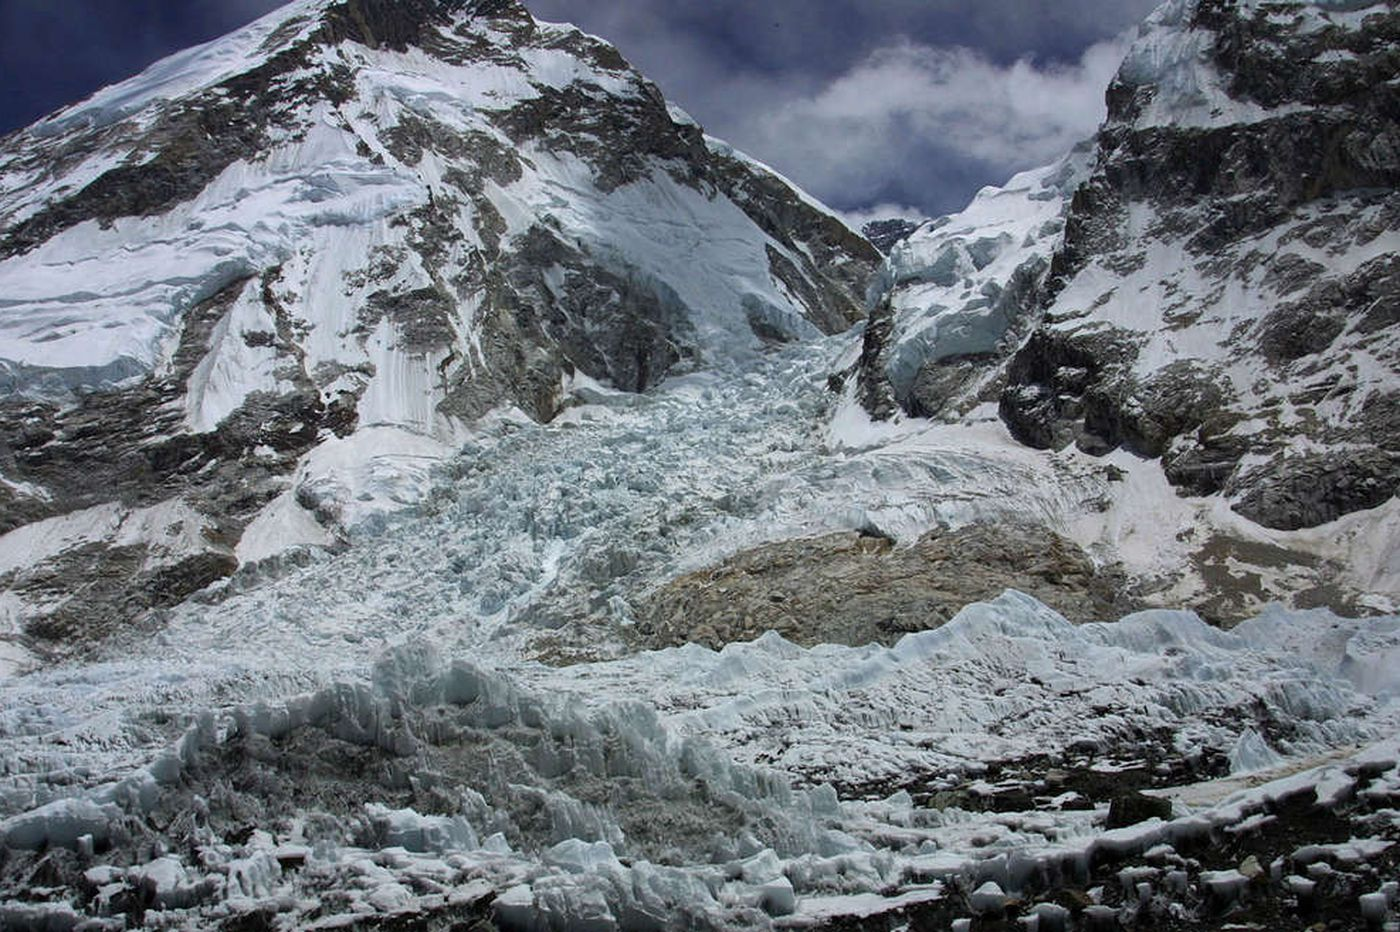 Avalanche kills at least 12 on Everest